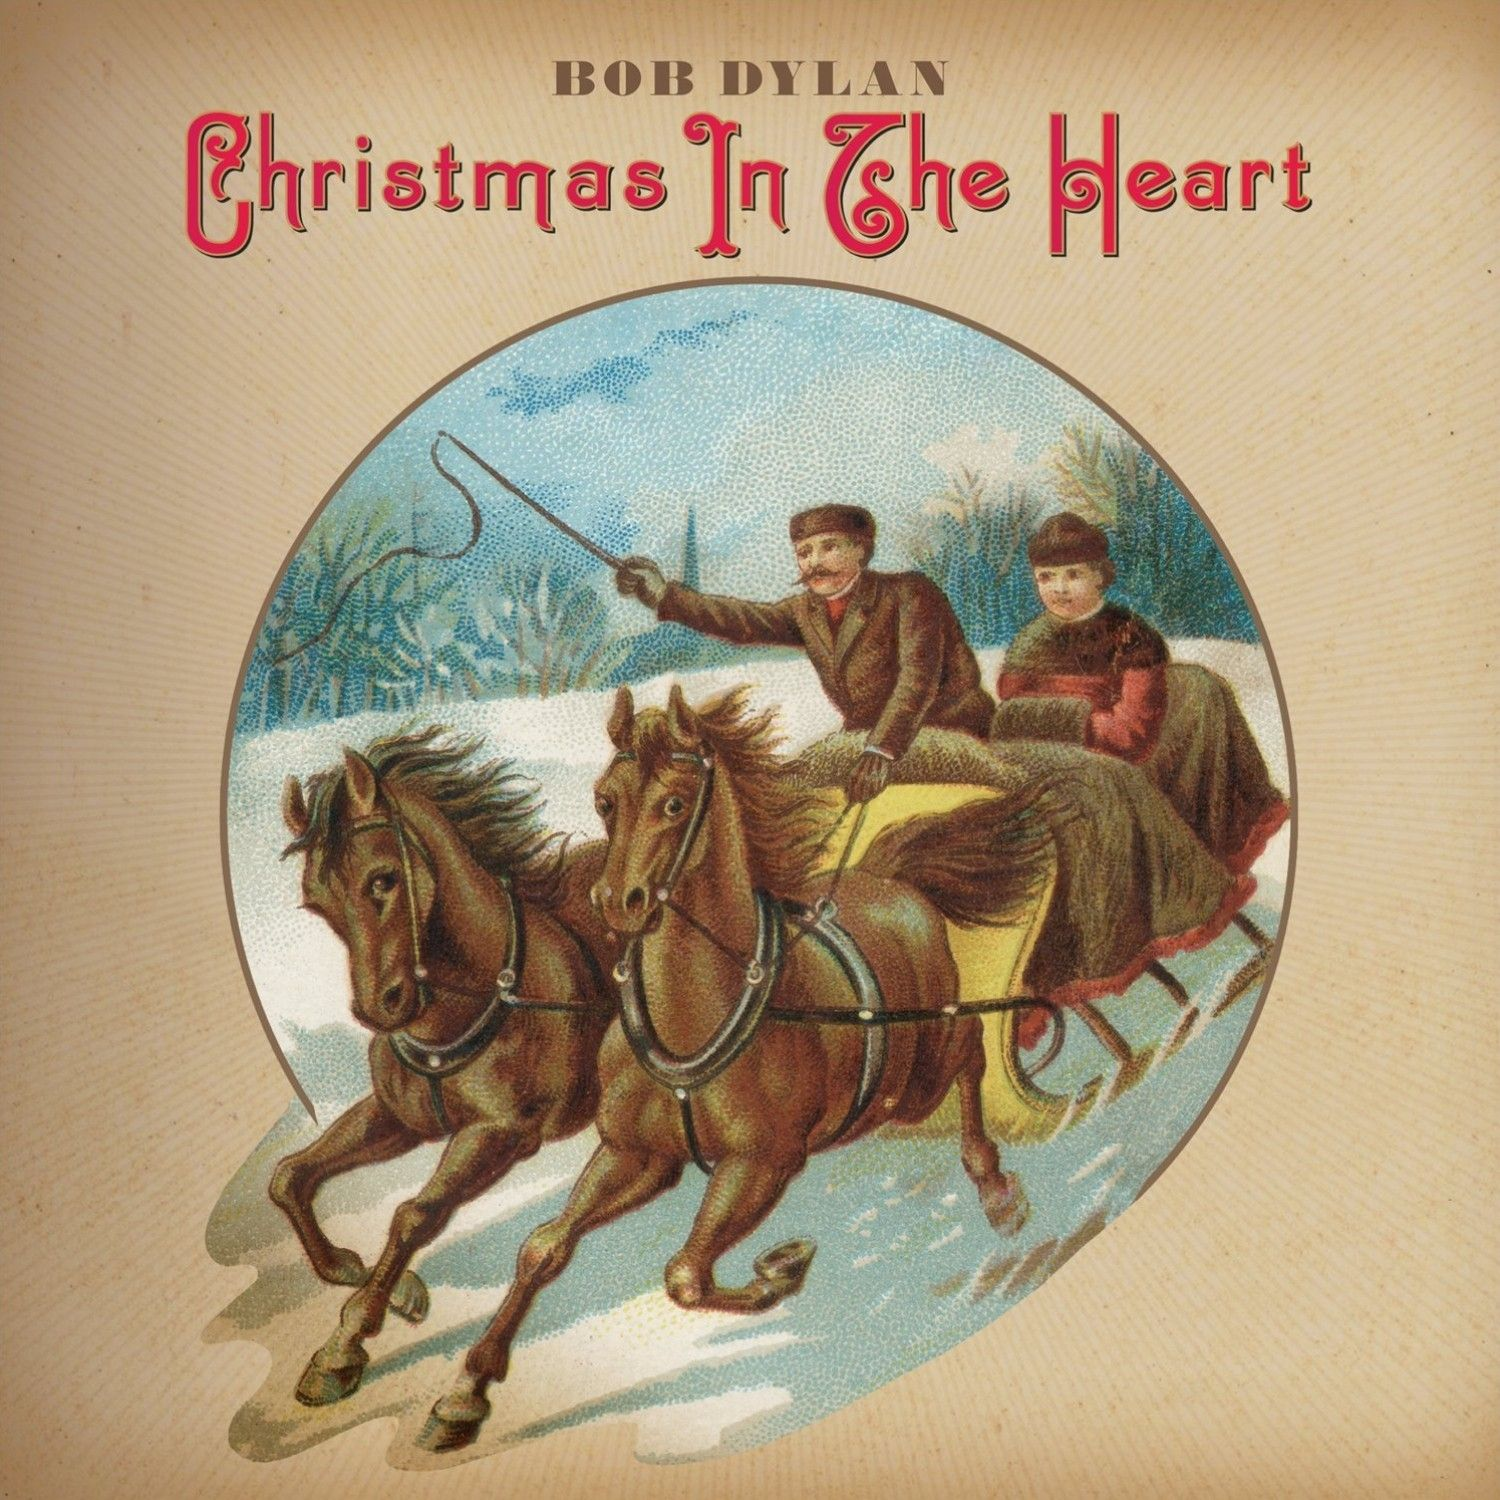 Bob Dylan - Christmas In The Heart album cover